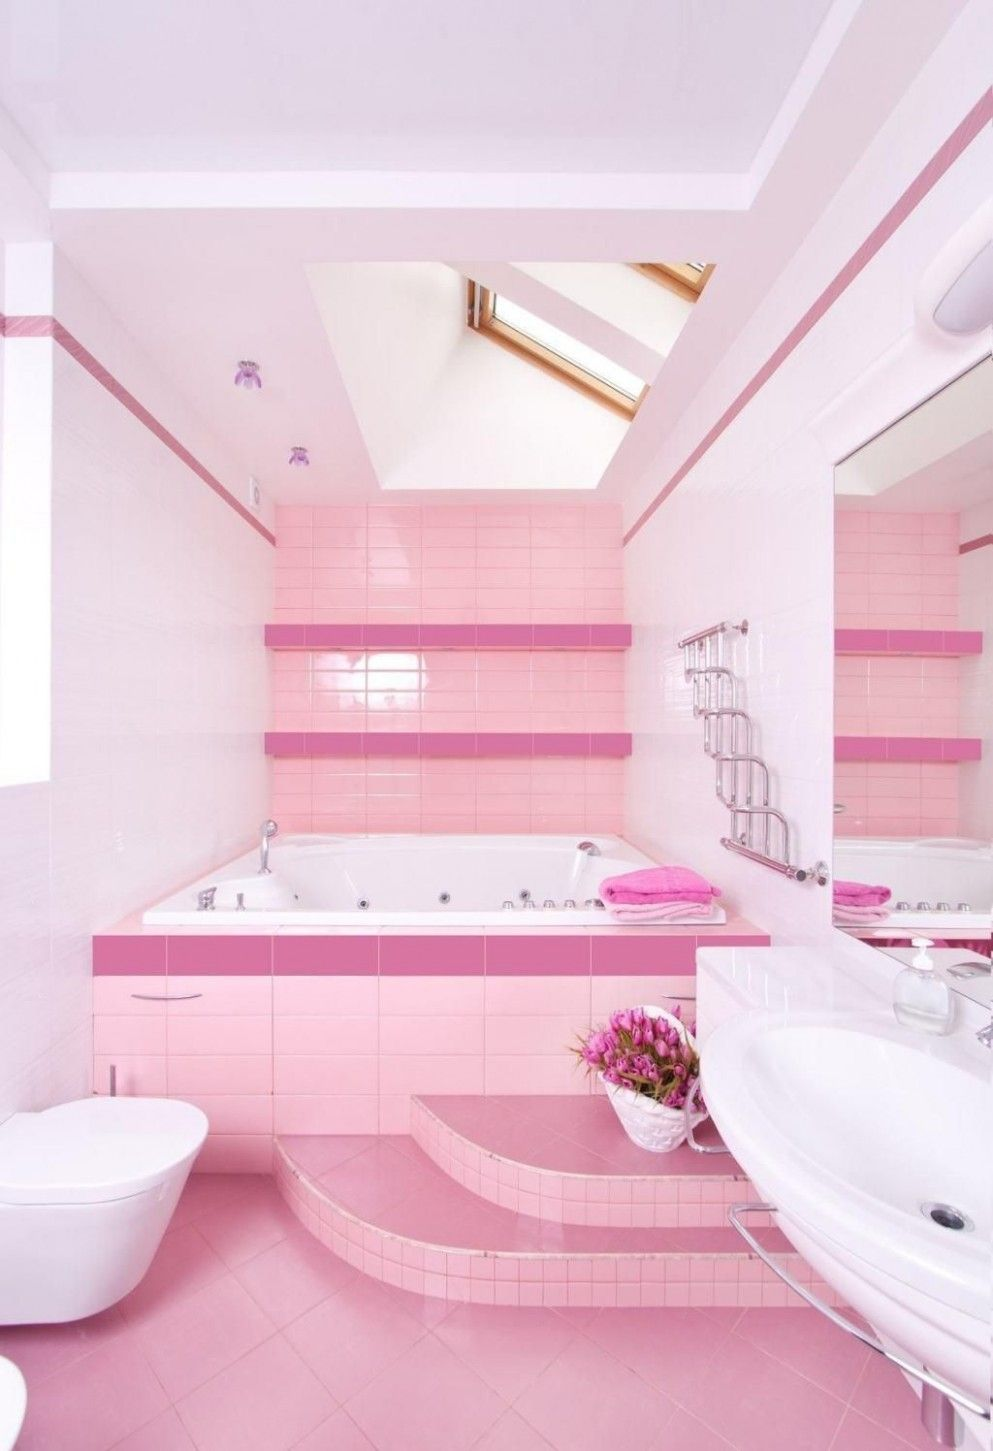 Badezimmer Fliesen Rosa Check More At Https Baladevahome Com Badezimmer Fliesen Rosa Pink Bathroom Decor Pink Bathroom Tiles Trendy Bathroom Tiles